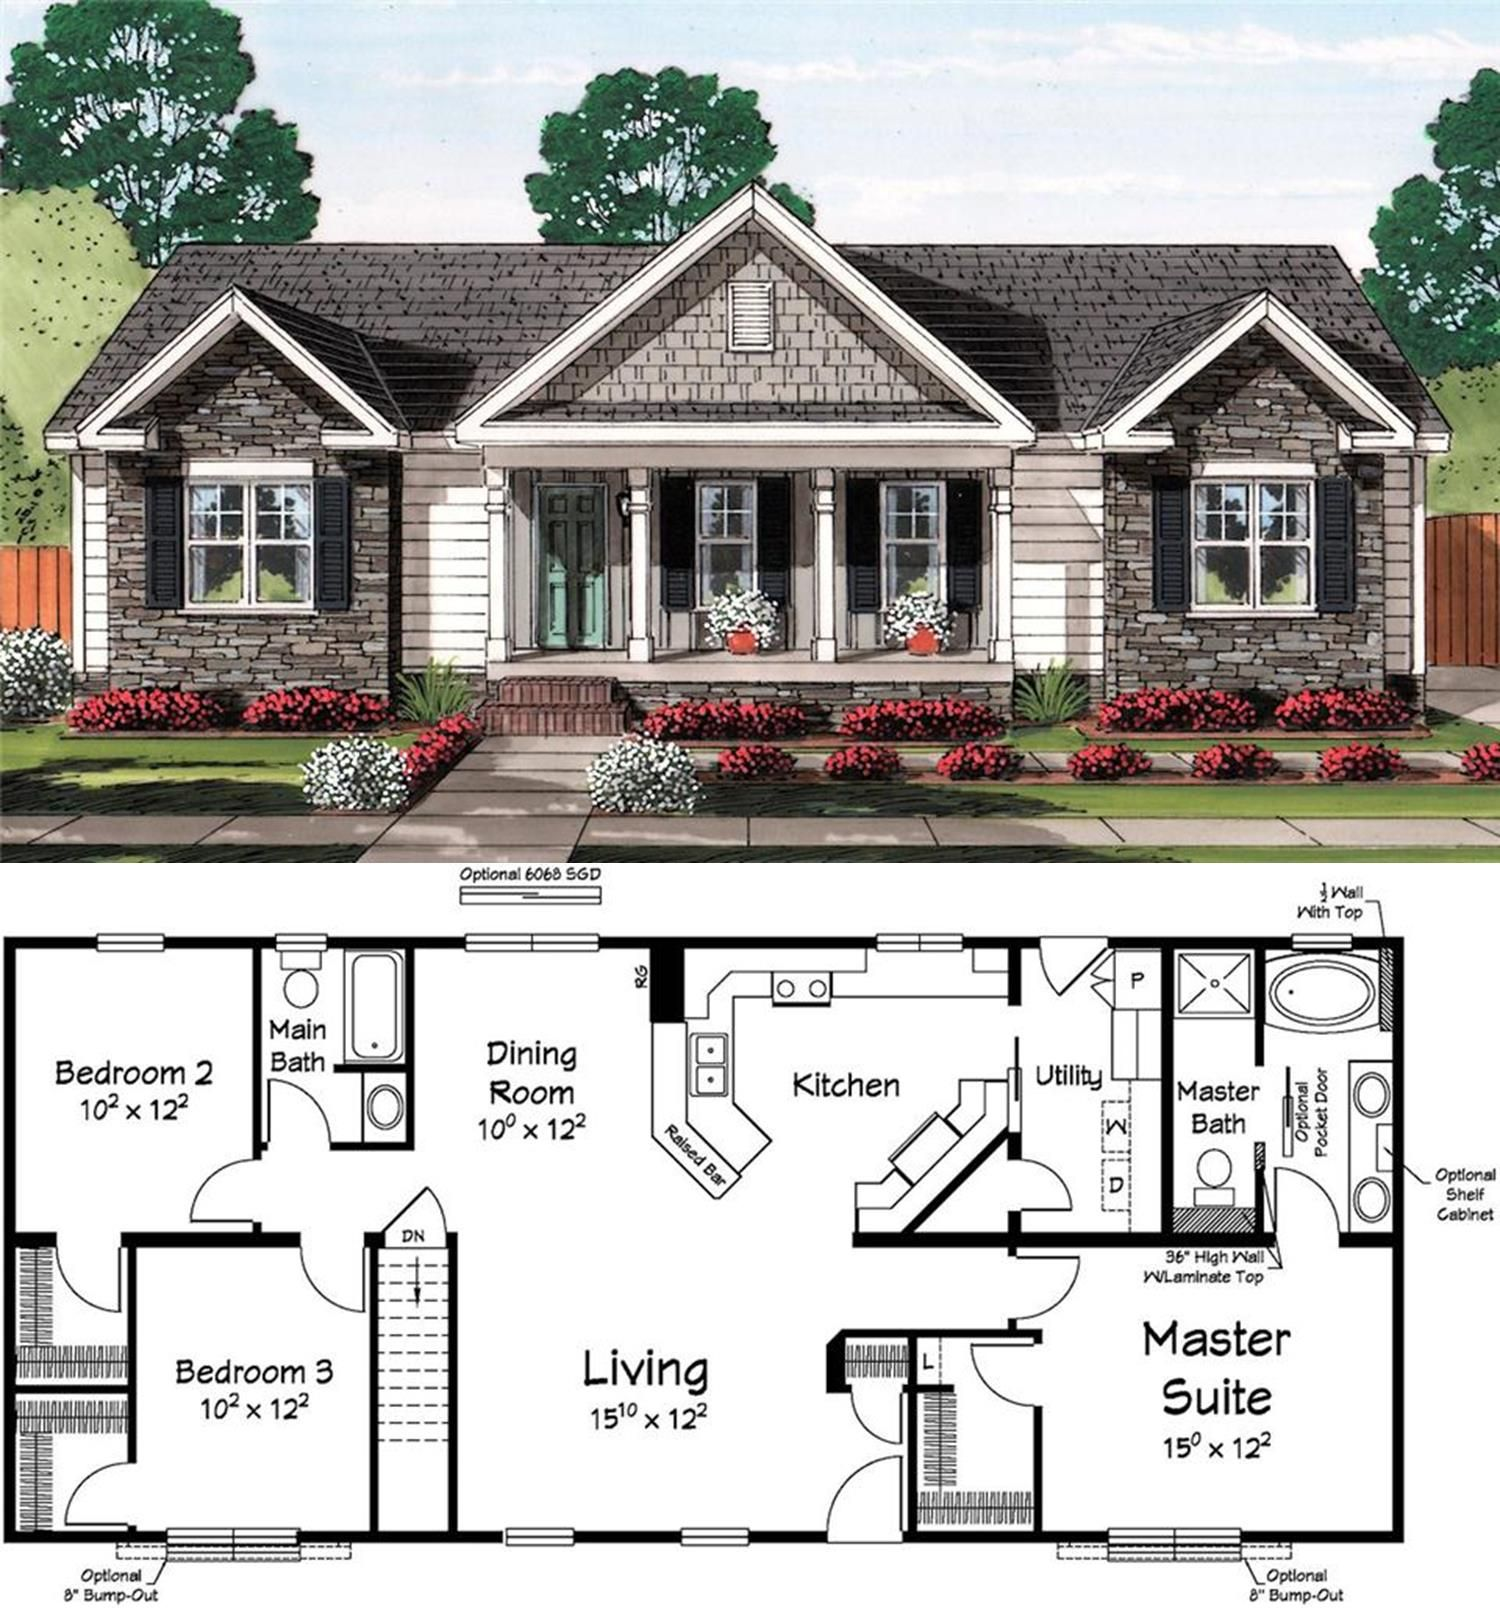 Classic Curb Appeal Housing New House Plans Dream House Plans